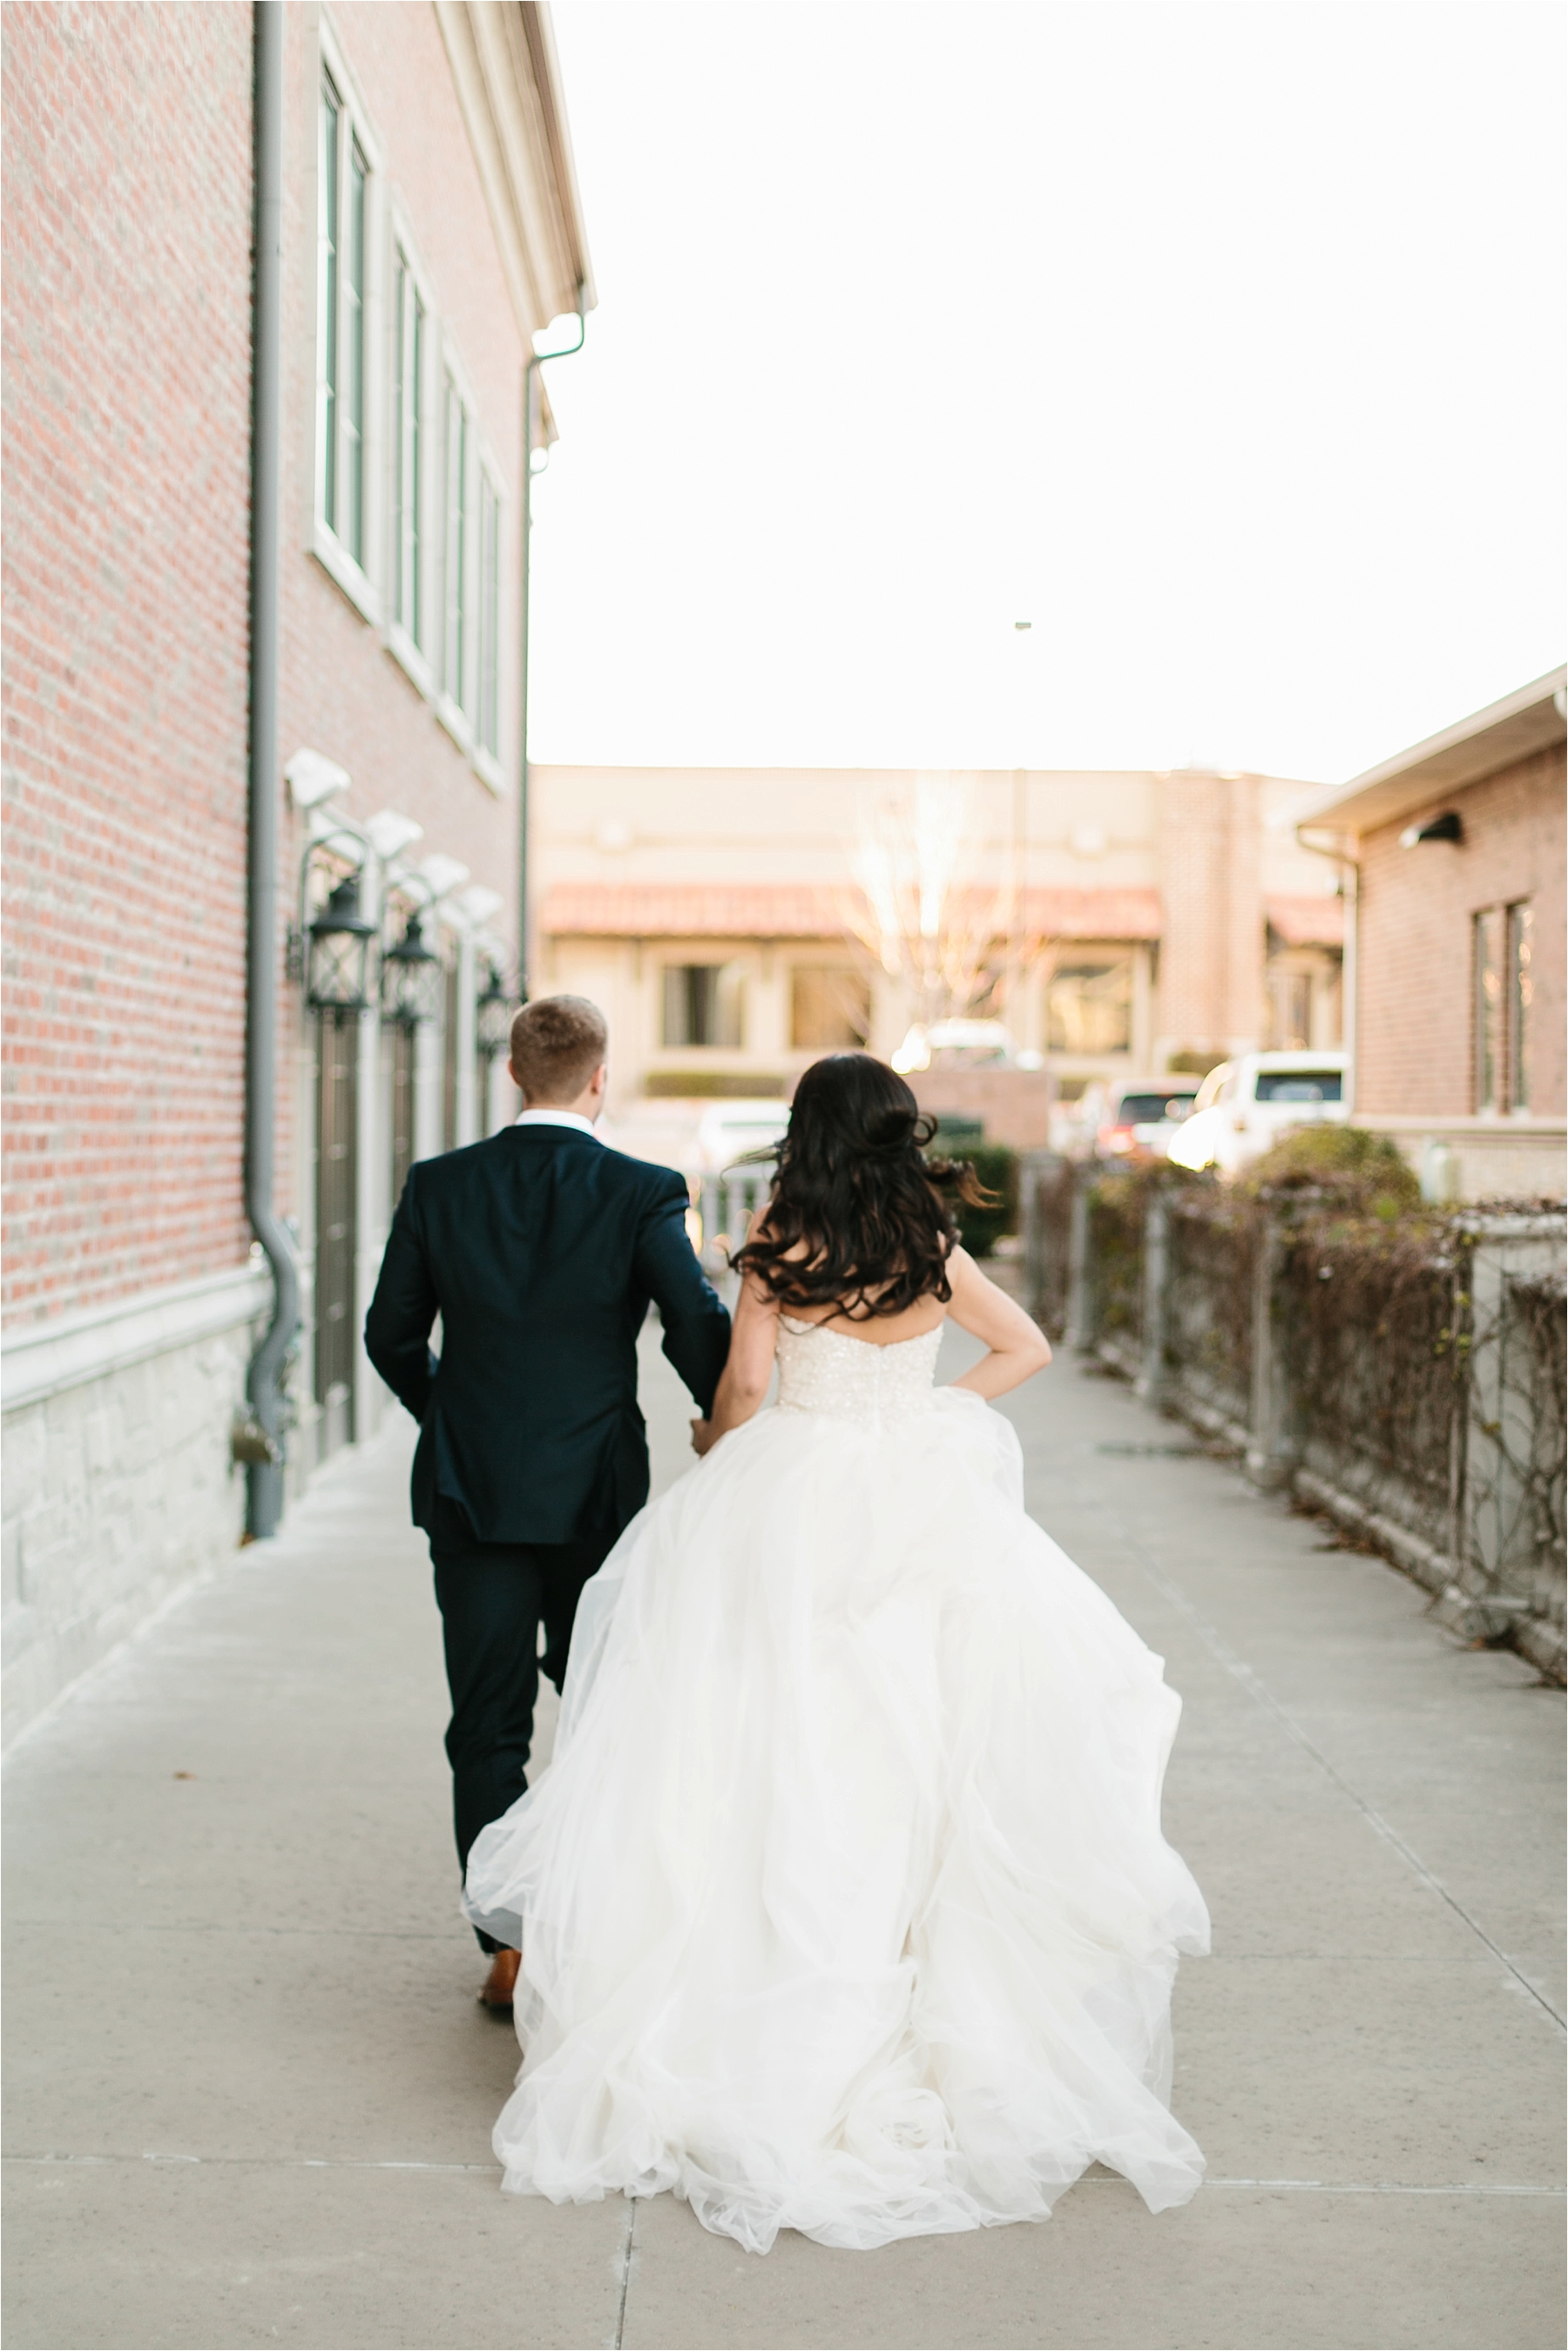 Chrissy + Zach __ The Windsor at Hebron Park Wedding by North Texas Wedding Photographer _ Rachel Meagan Photography __066